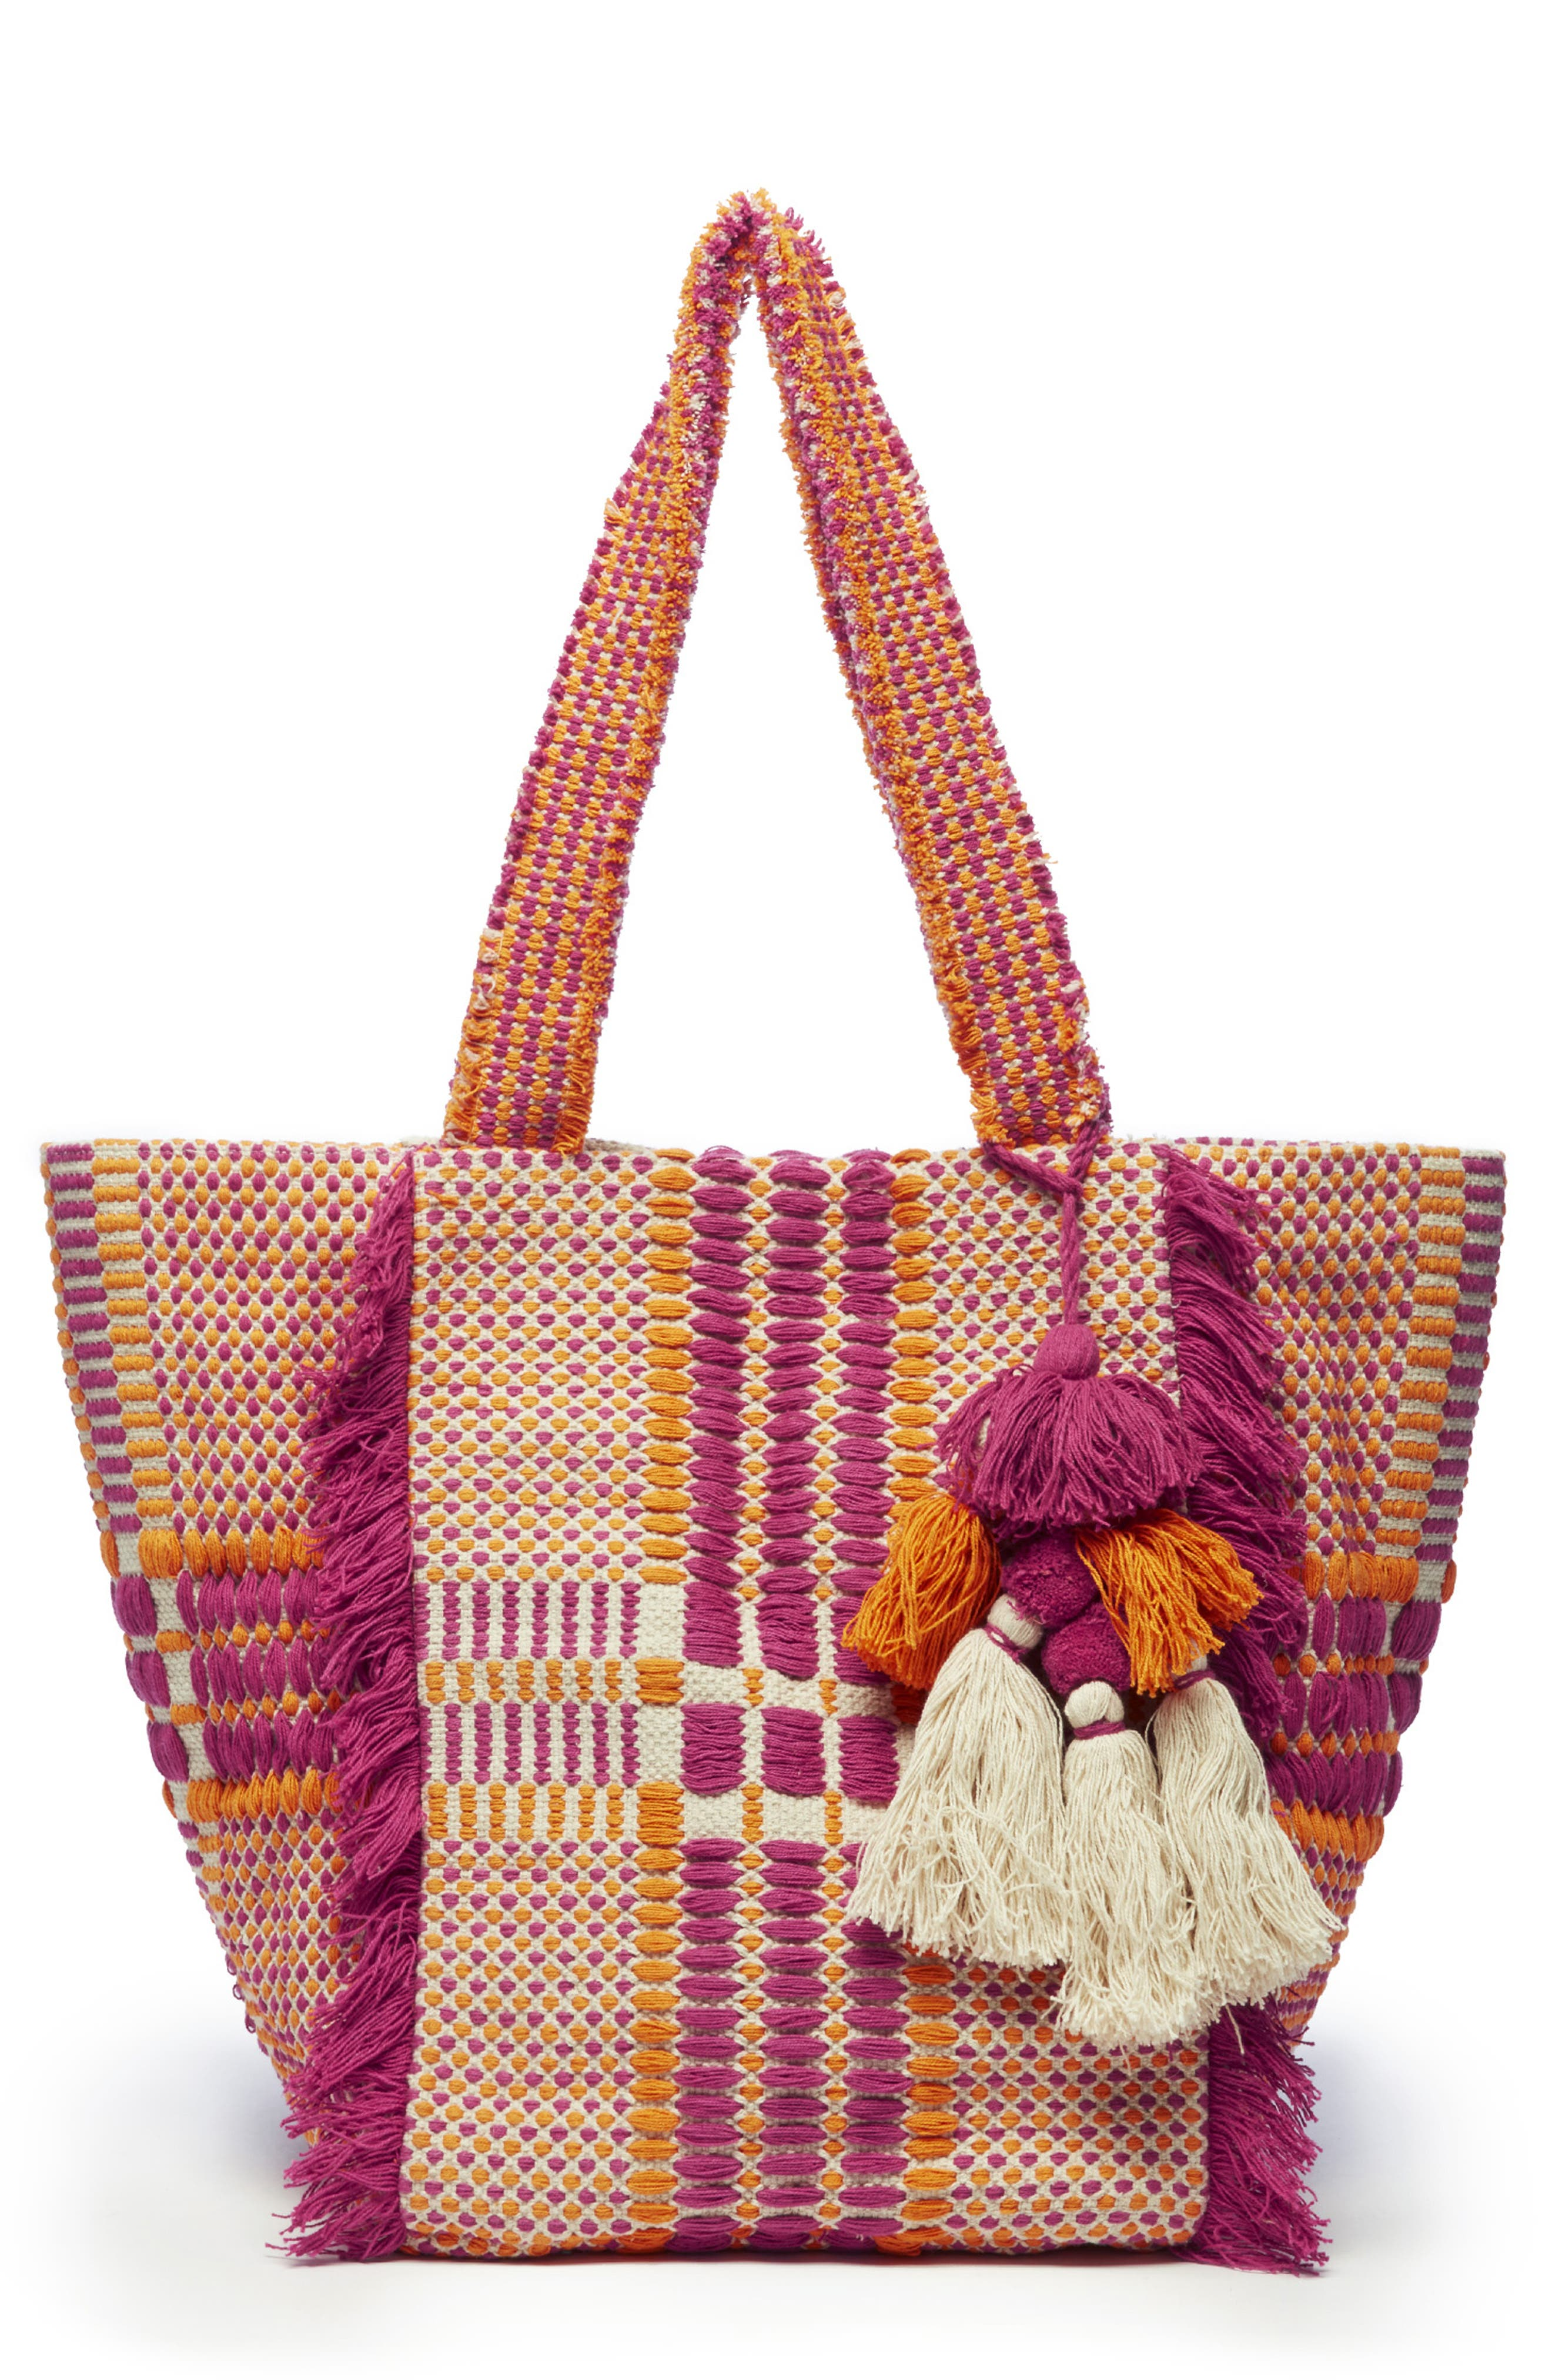 SOLE SOCIETY, Jalia Cotton Tote, Main thumbnail 1, color, PINK MULTI